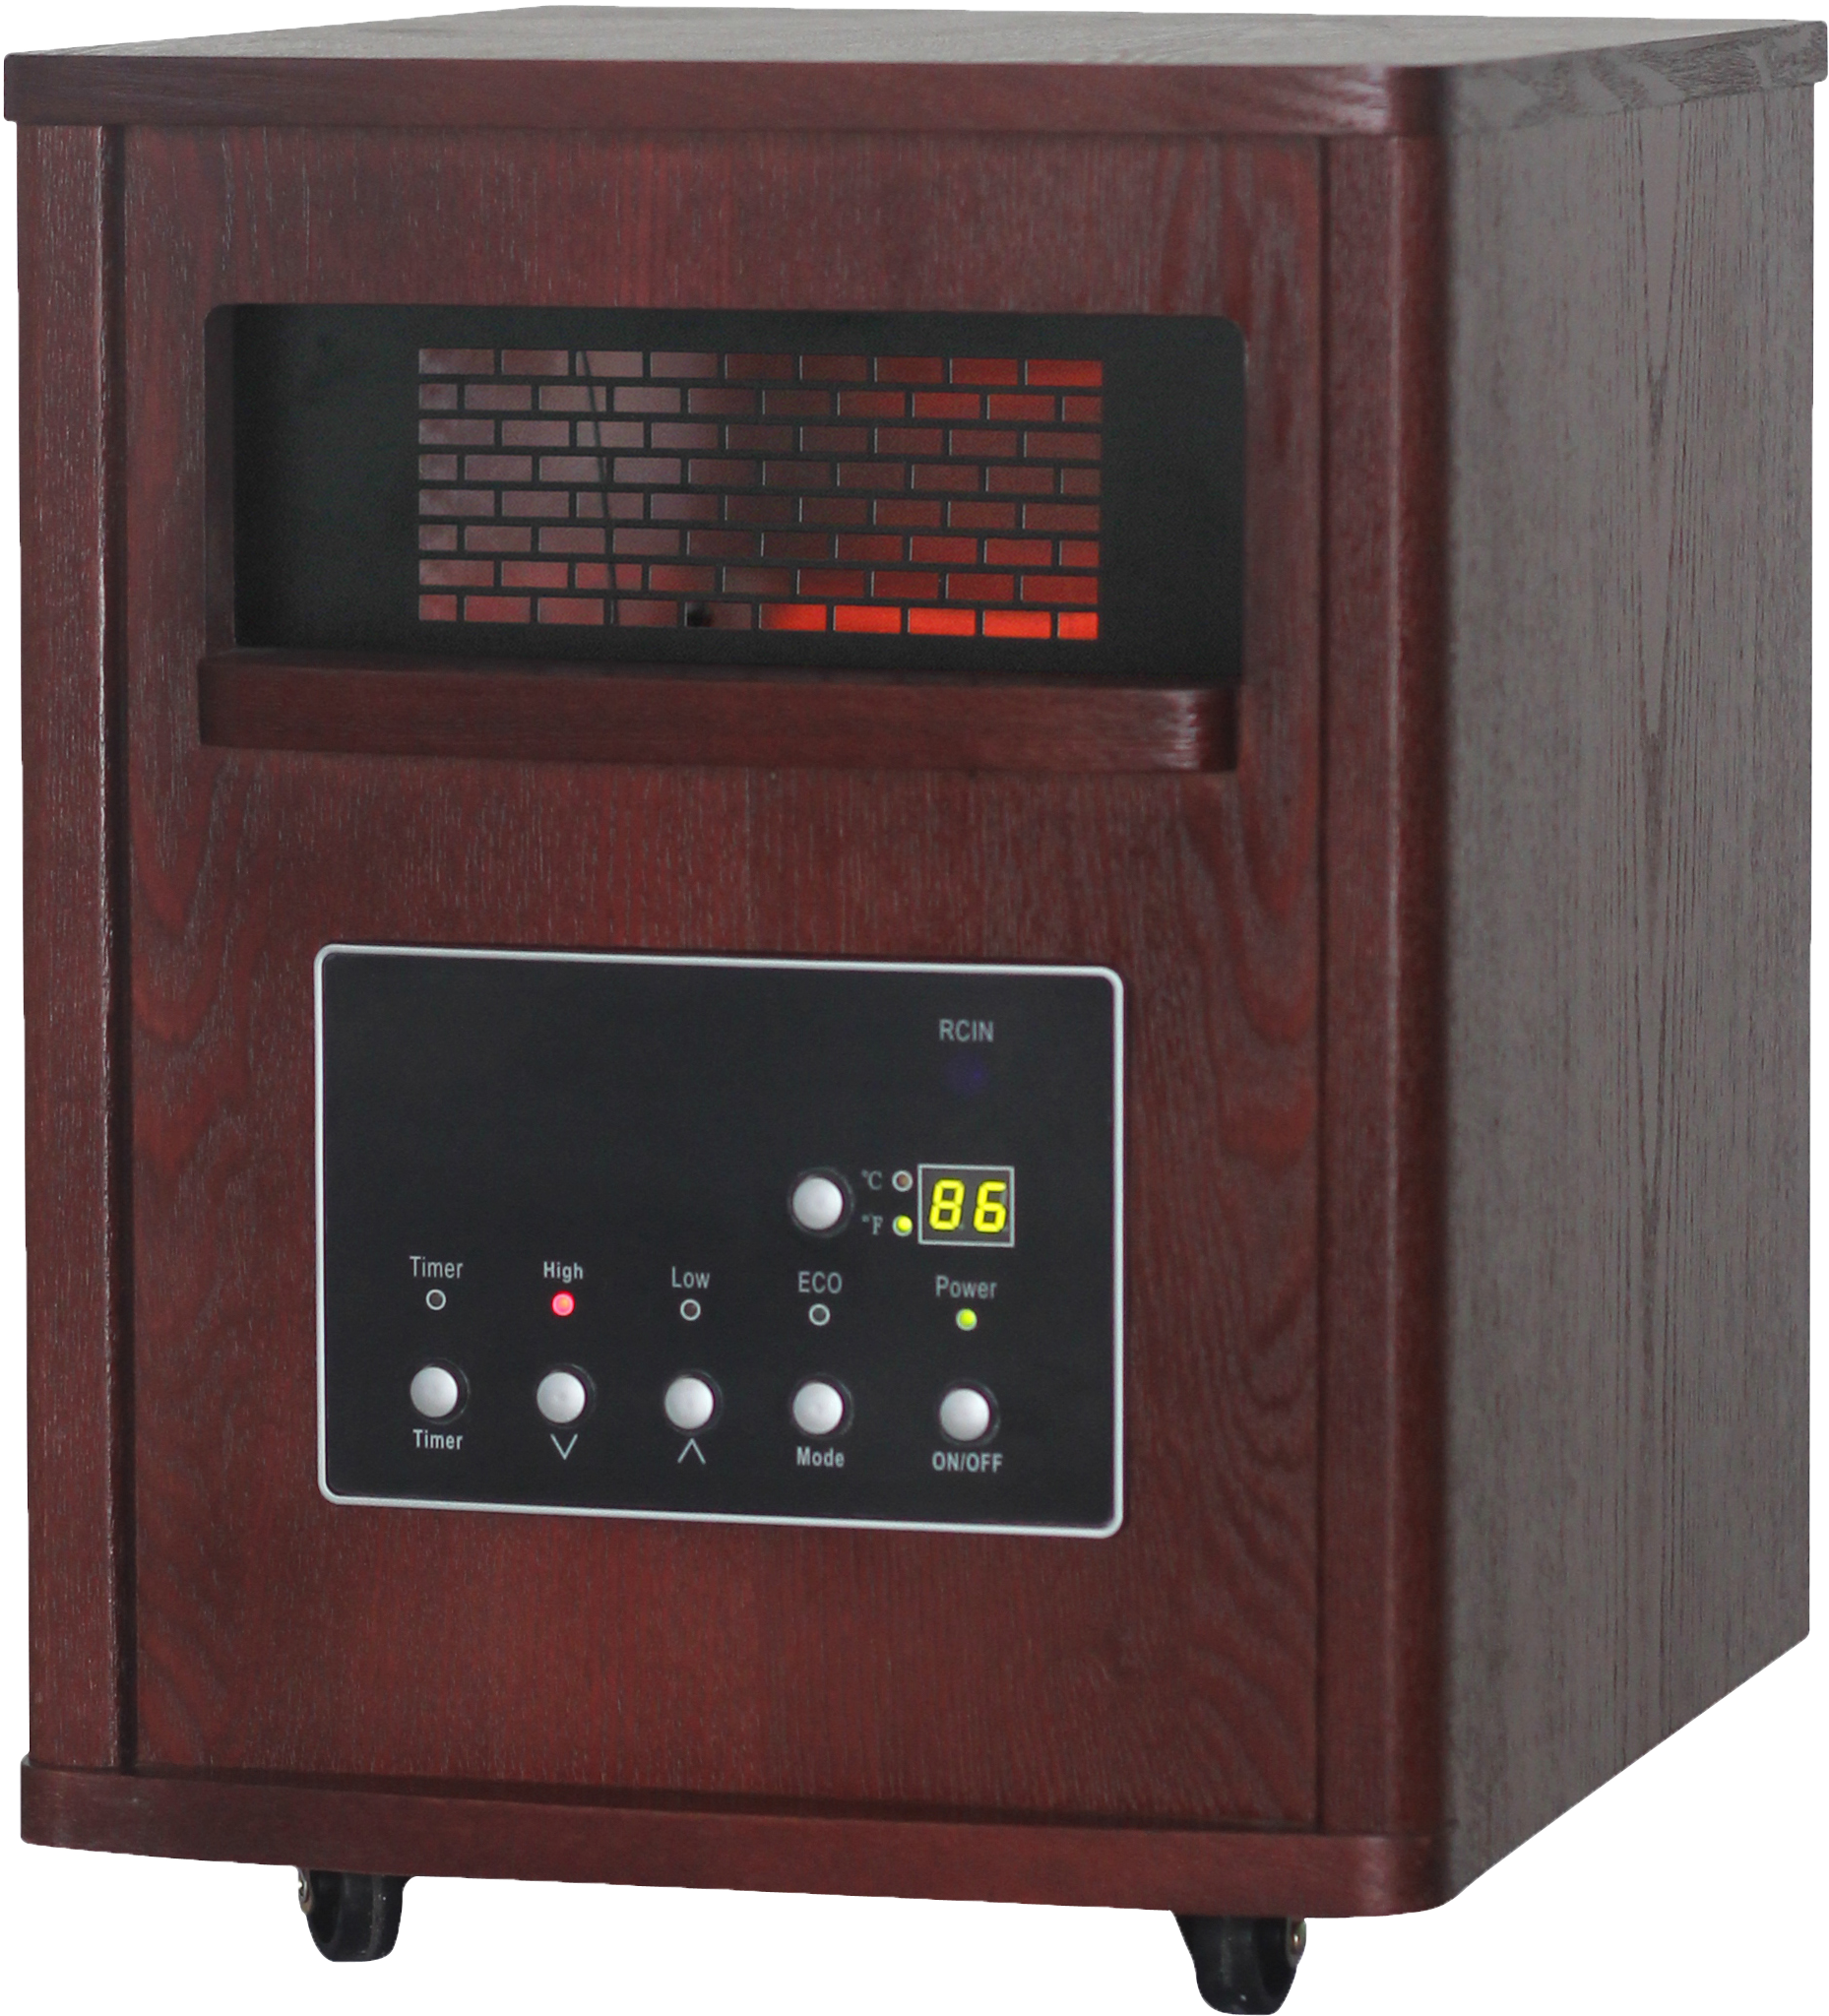 Thermal Wave by SUNHEAT TW1460 Infrared Heater - Espresso